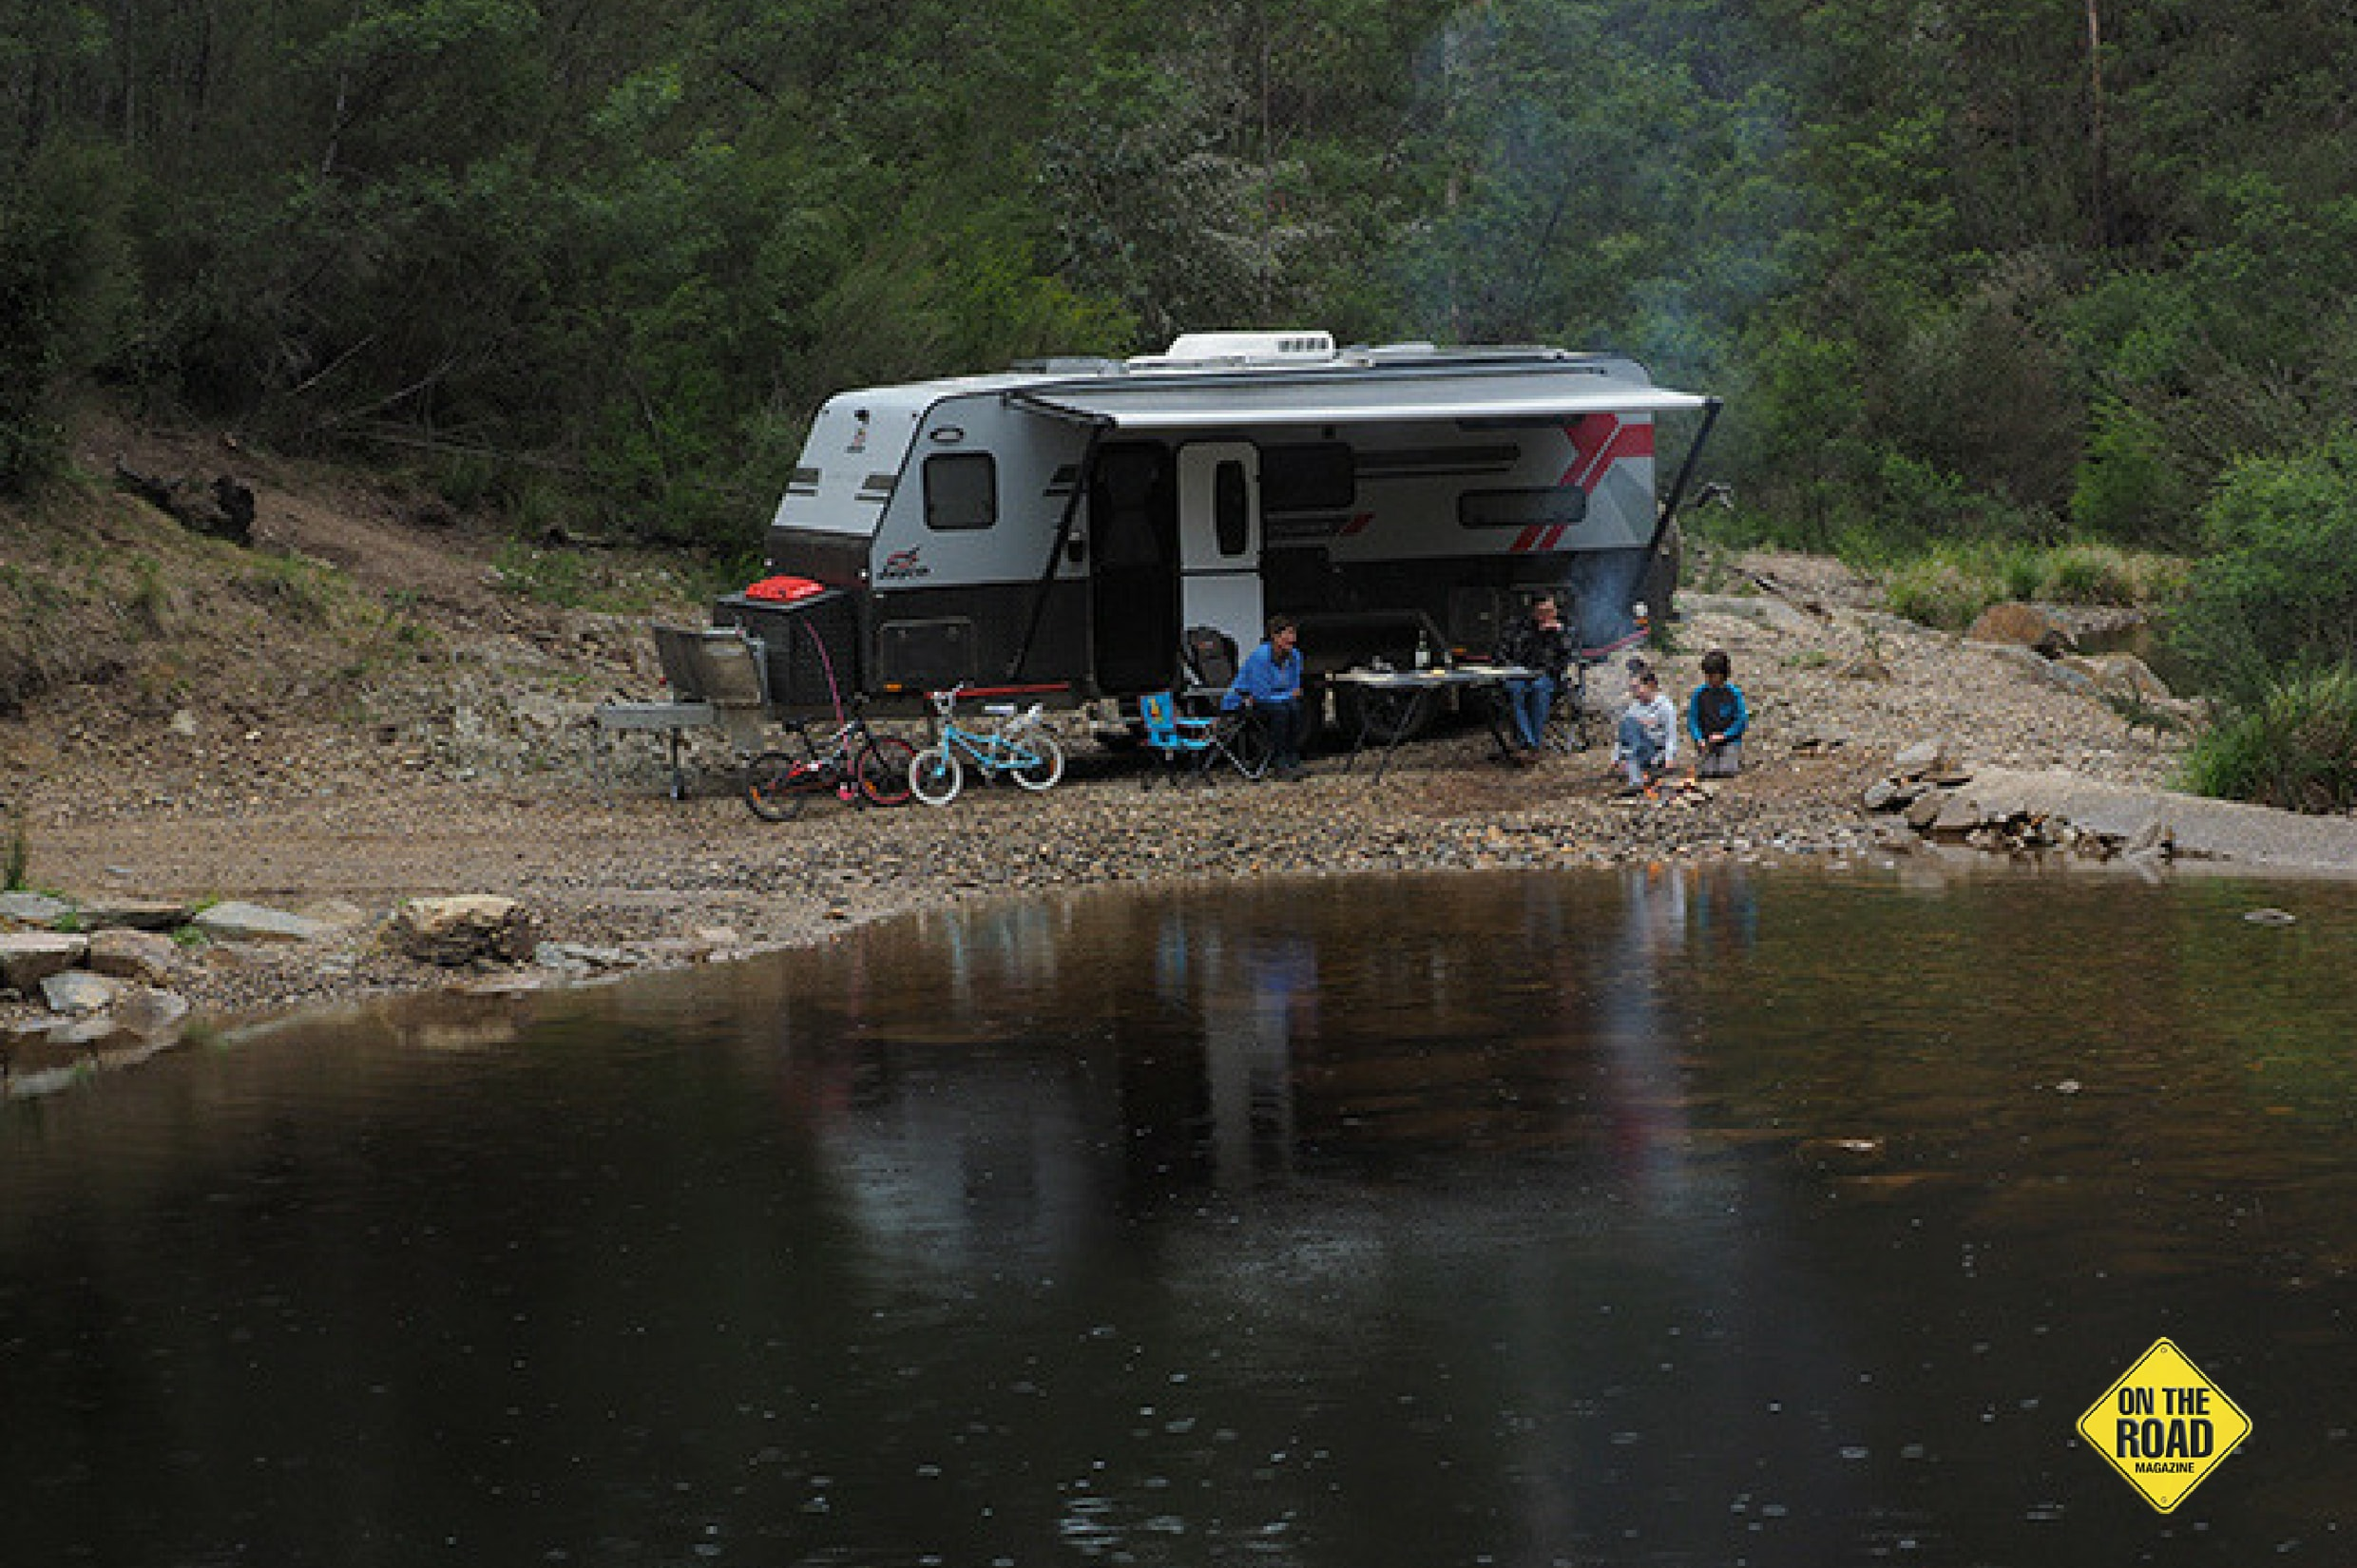 The Jayco Adventurer camping in the river